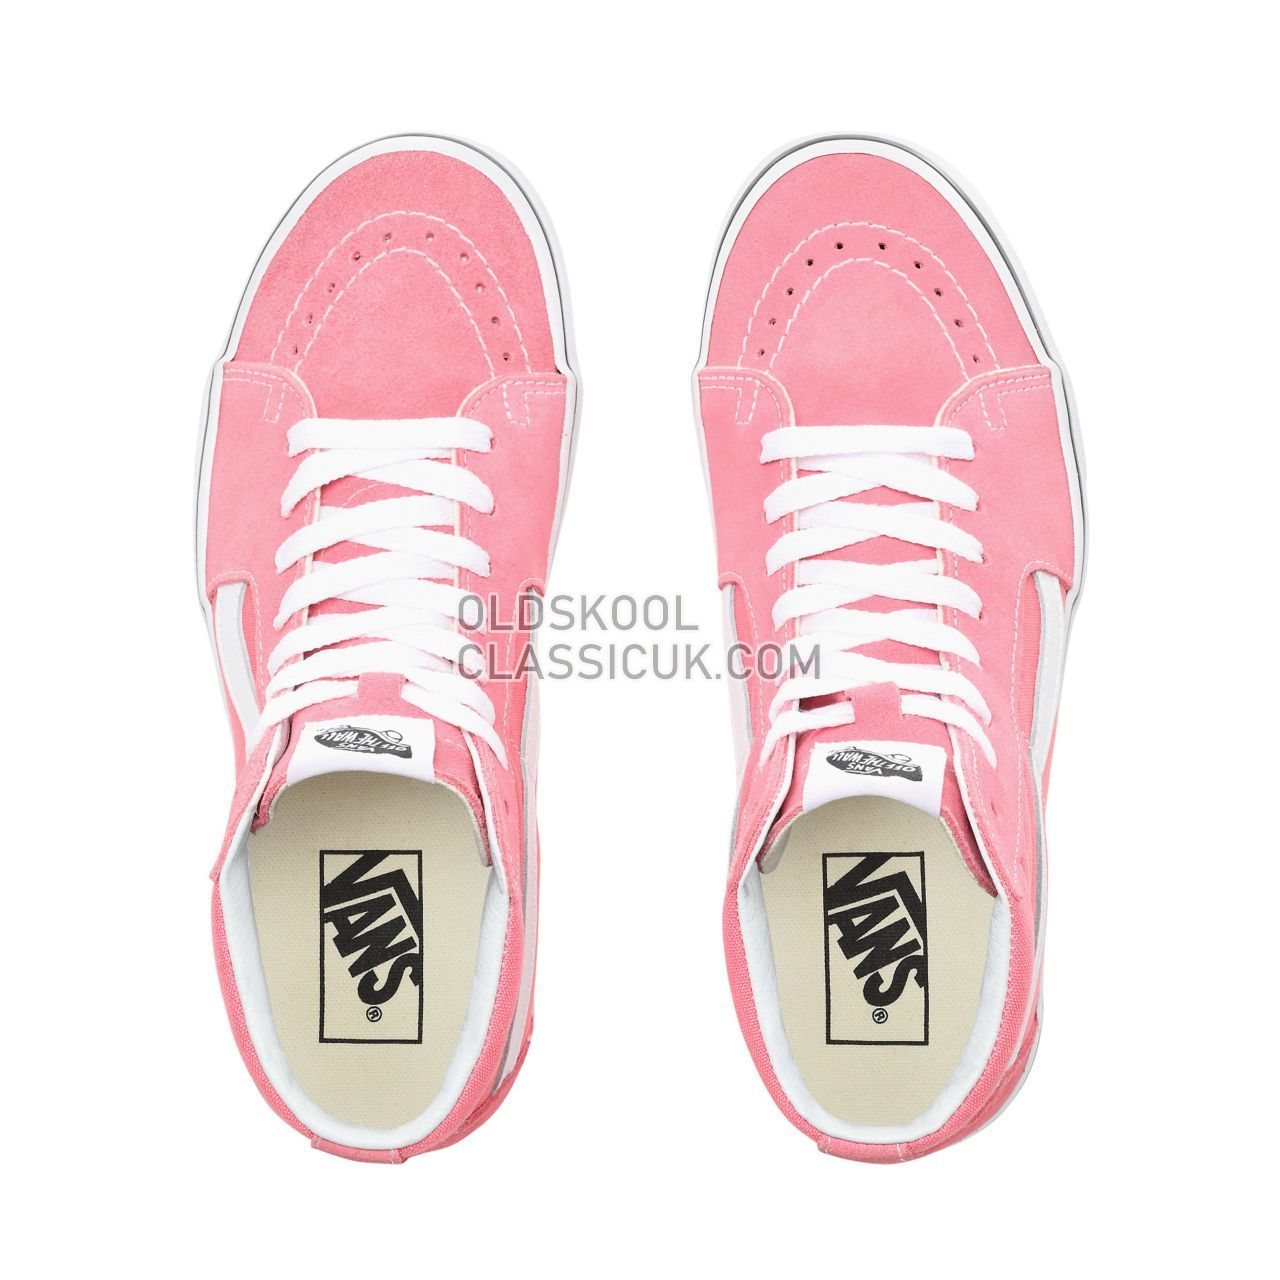 a59a6fed0e0 Vans Sk8-Hi Sneakers Womens Strawberry Pink True White VN0A38GEGY7 Shoes -  £65